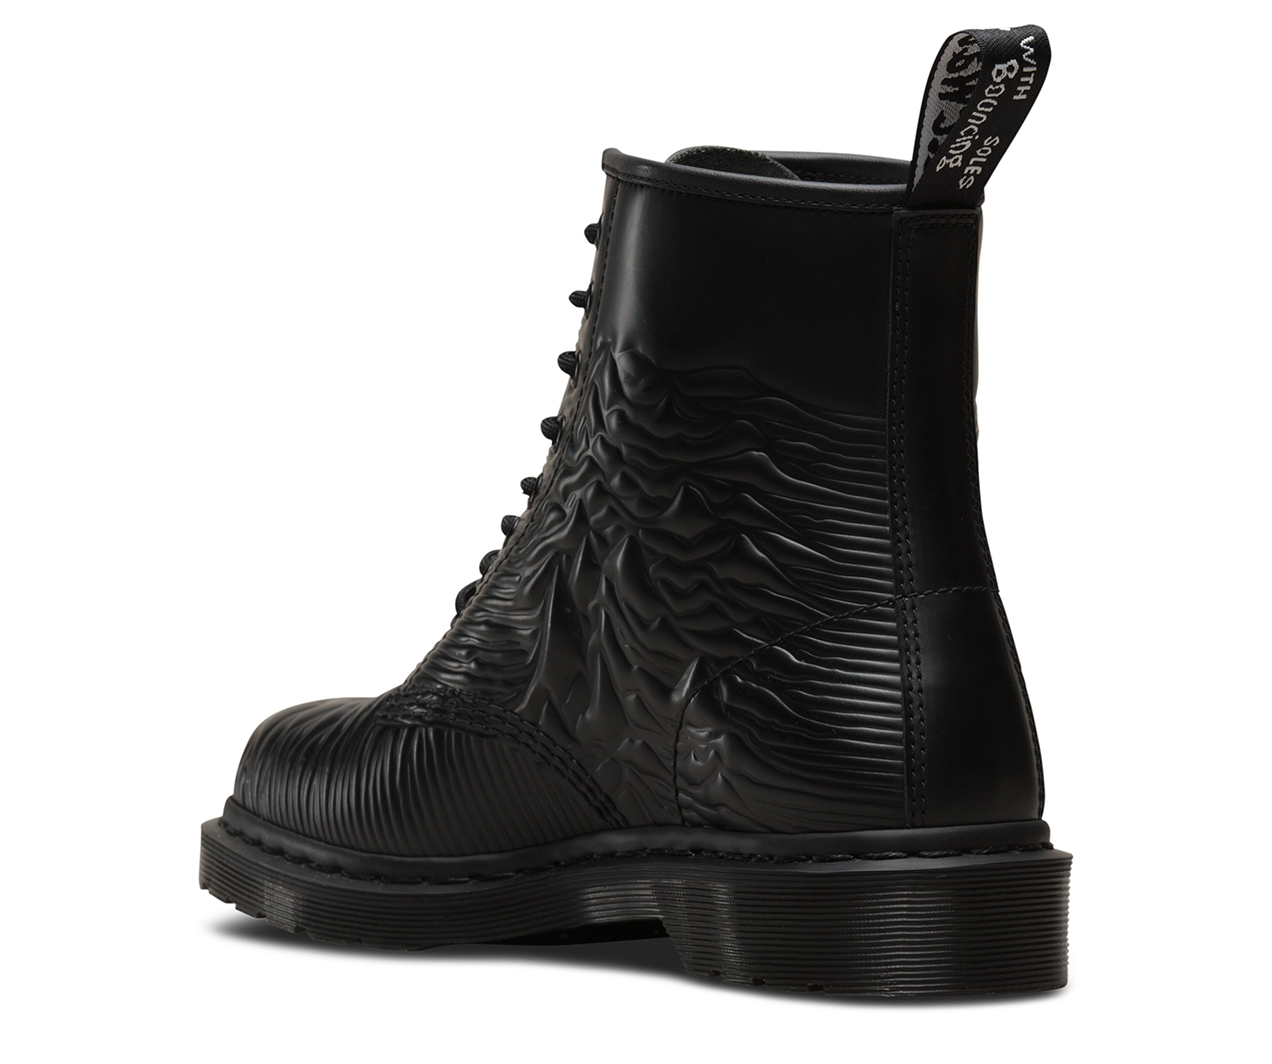 Dr. Martens1460 Unknown Pleasures